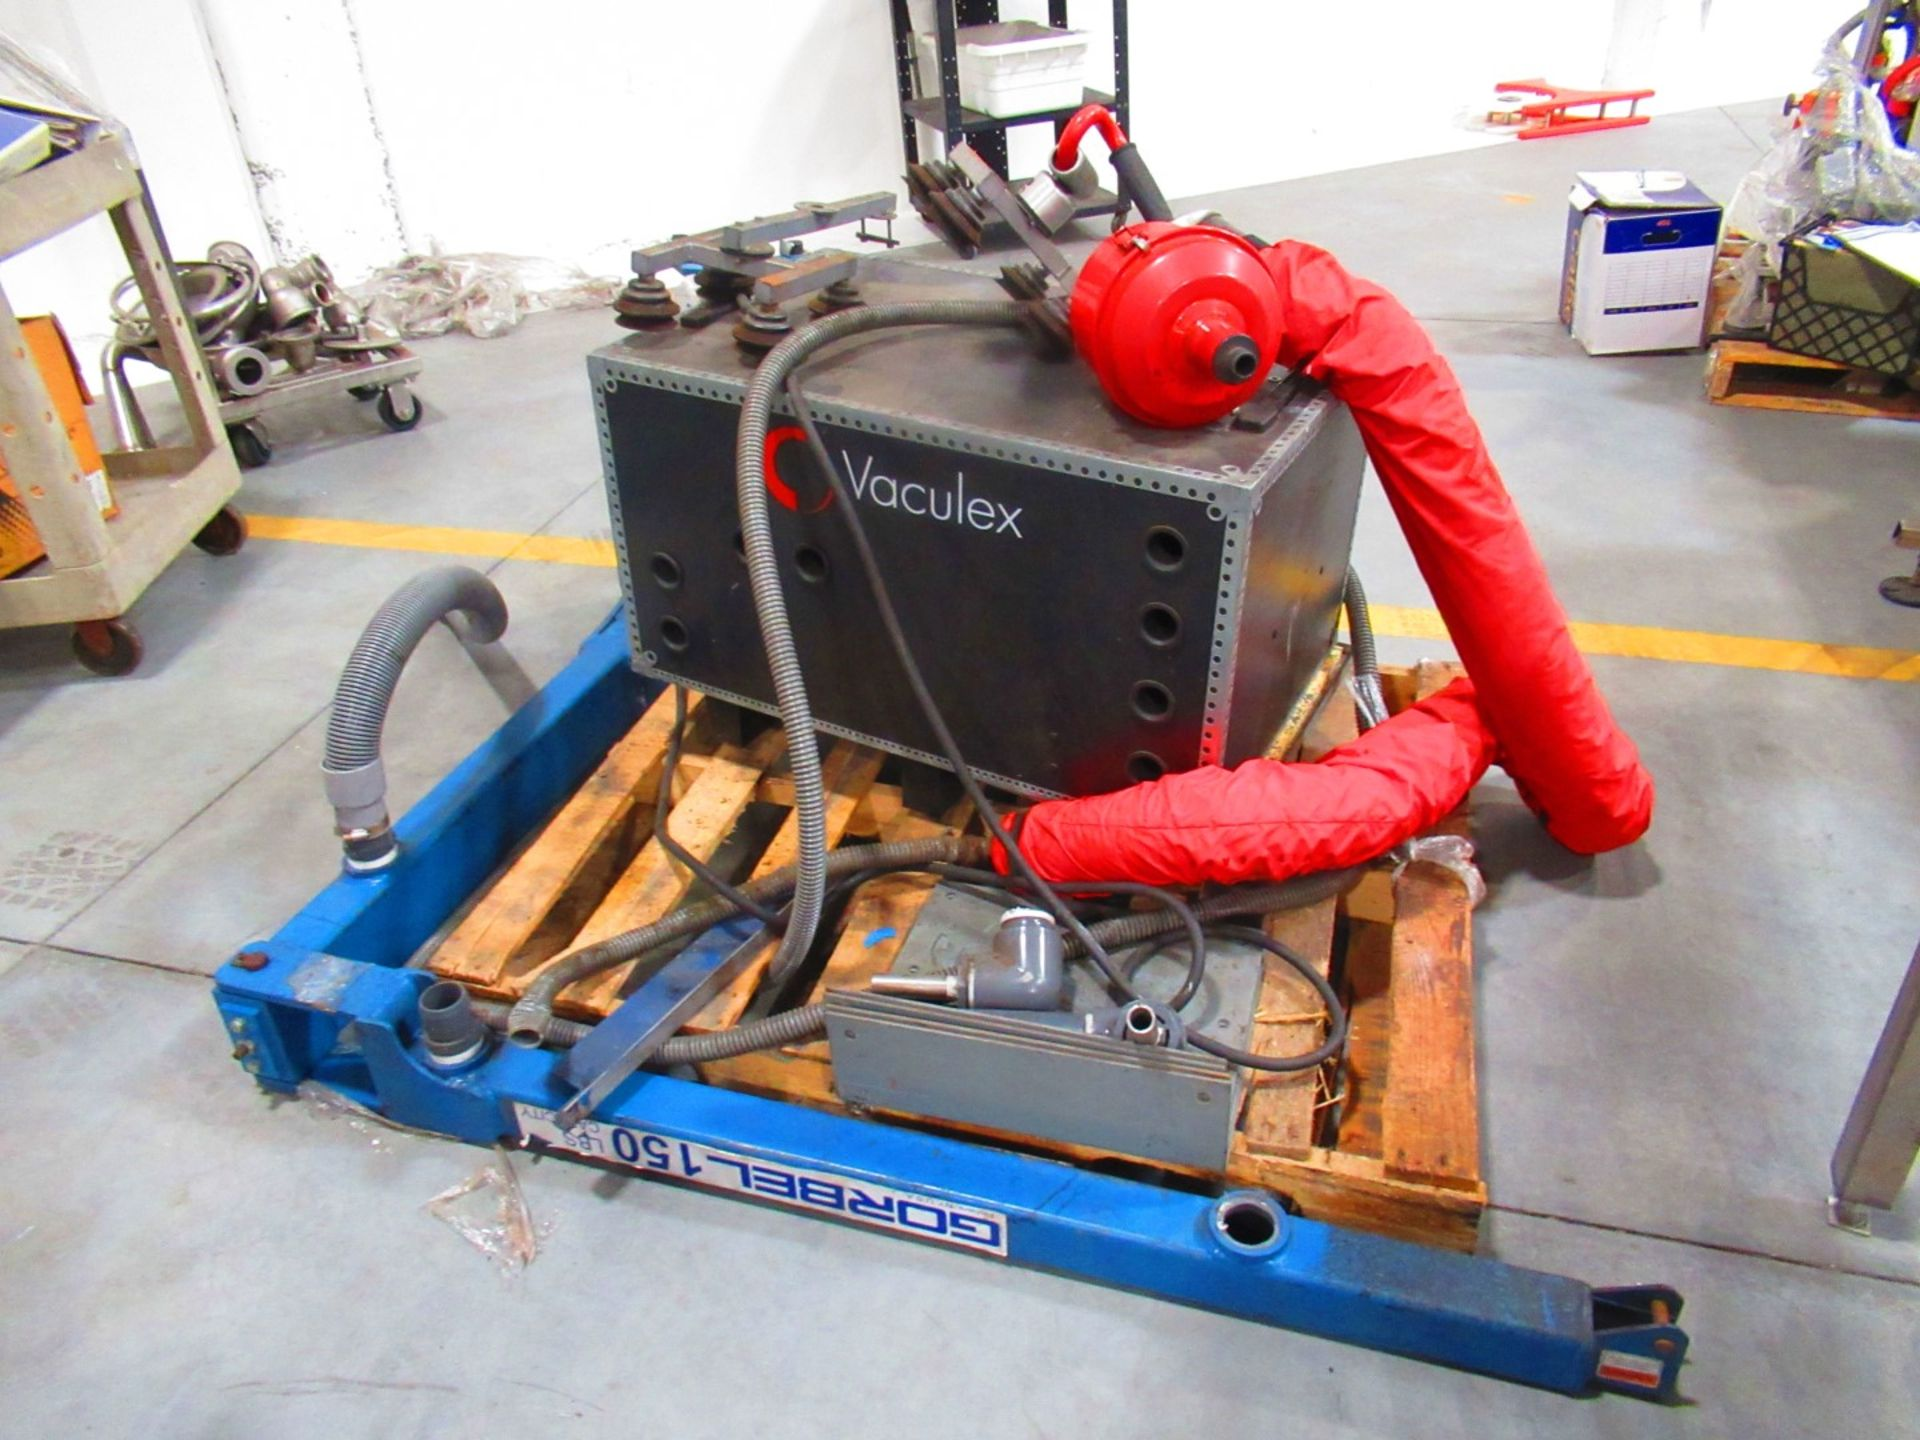 Vacuum Lifter - Image 3 of 6